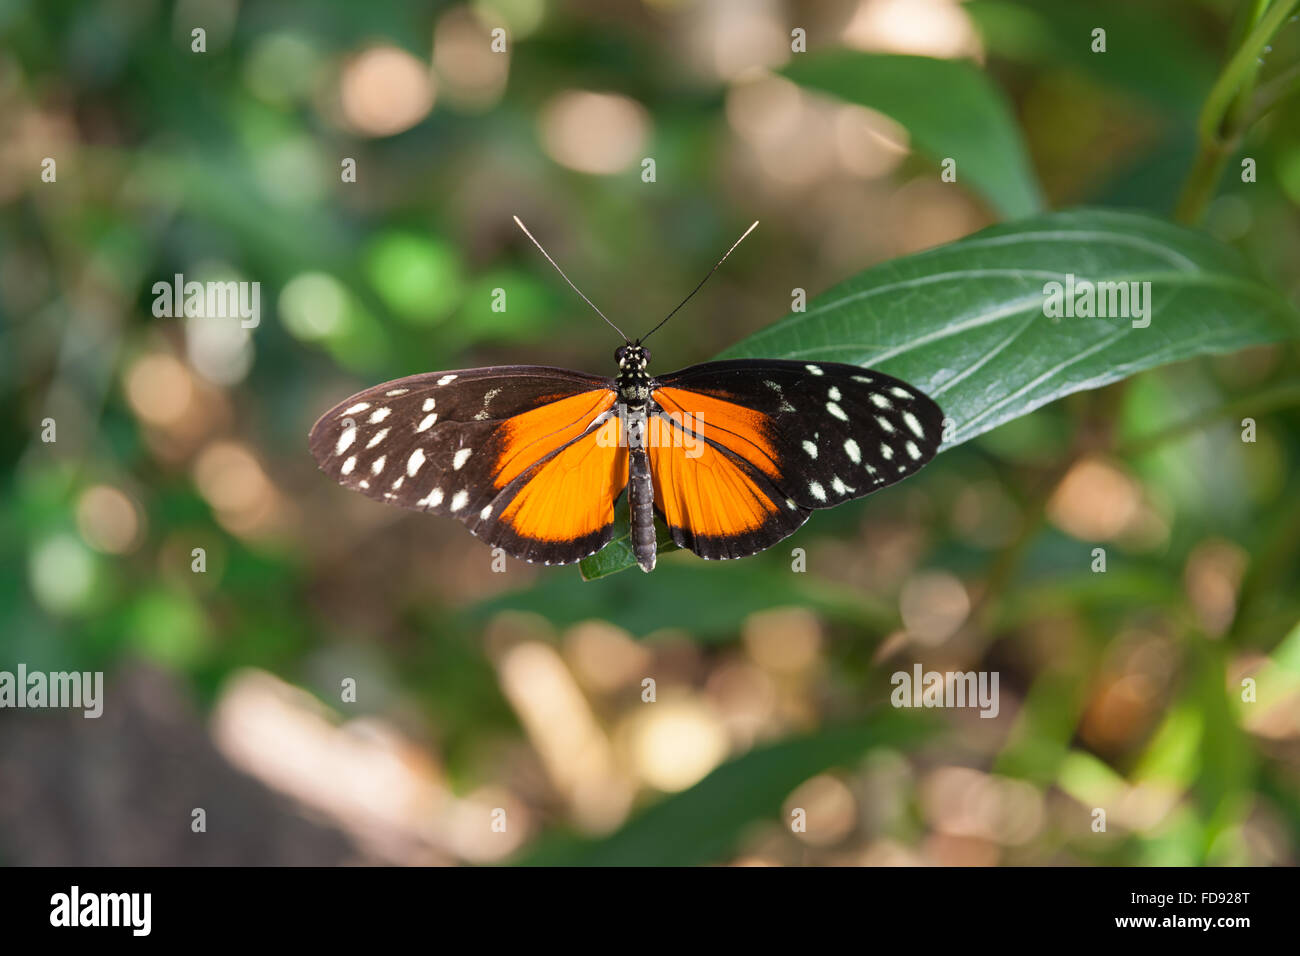 brightly colored crimson patch butterfly settled wings open on green leaf - Stock Image